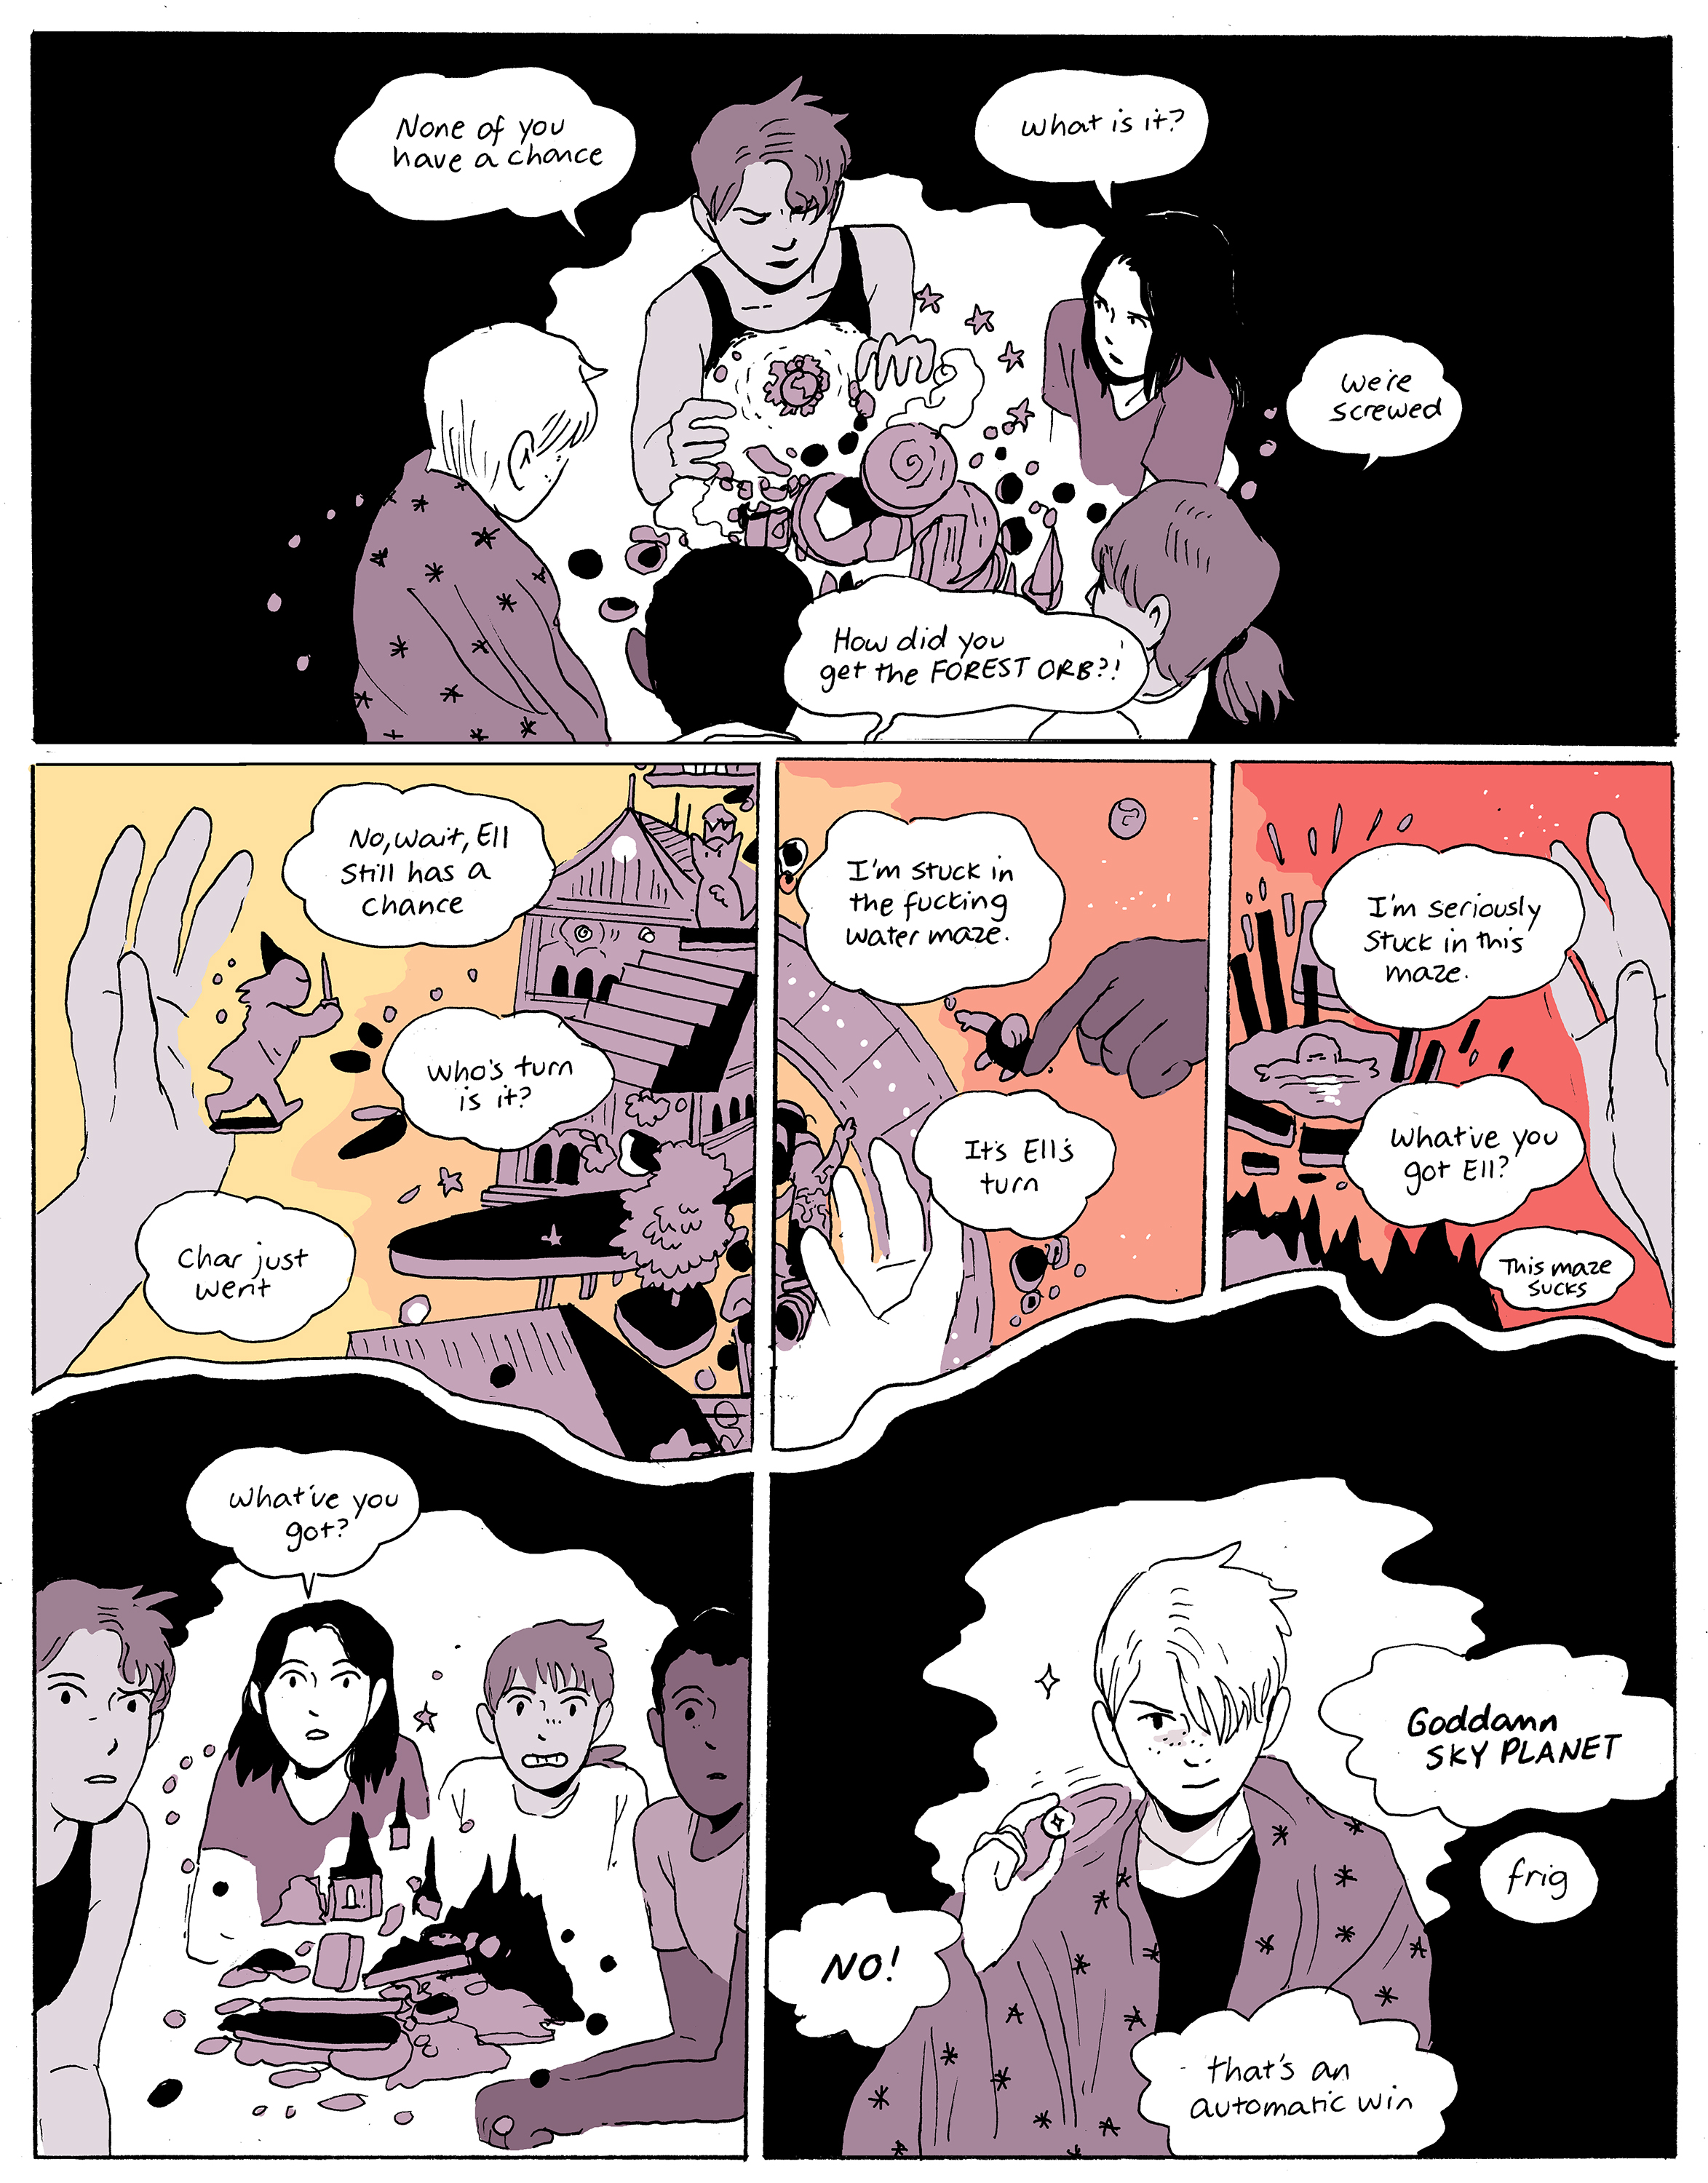 chapter02_page16.jpg